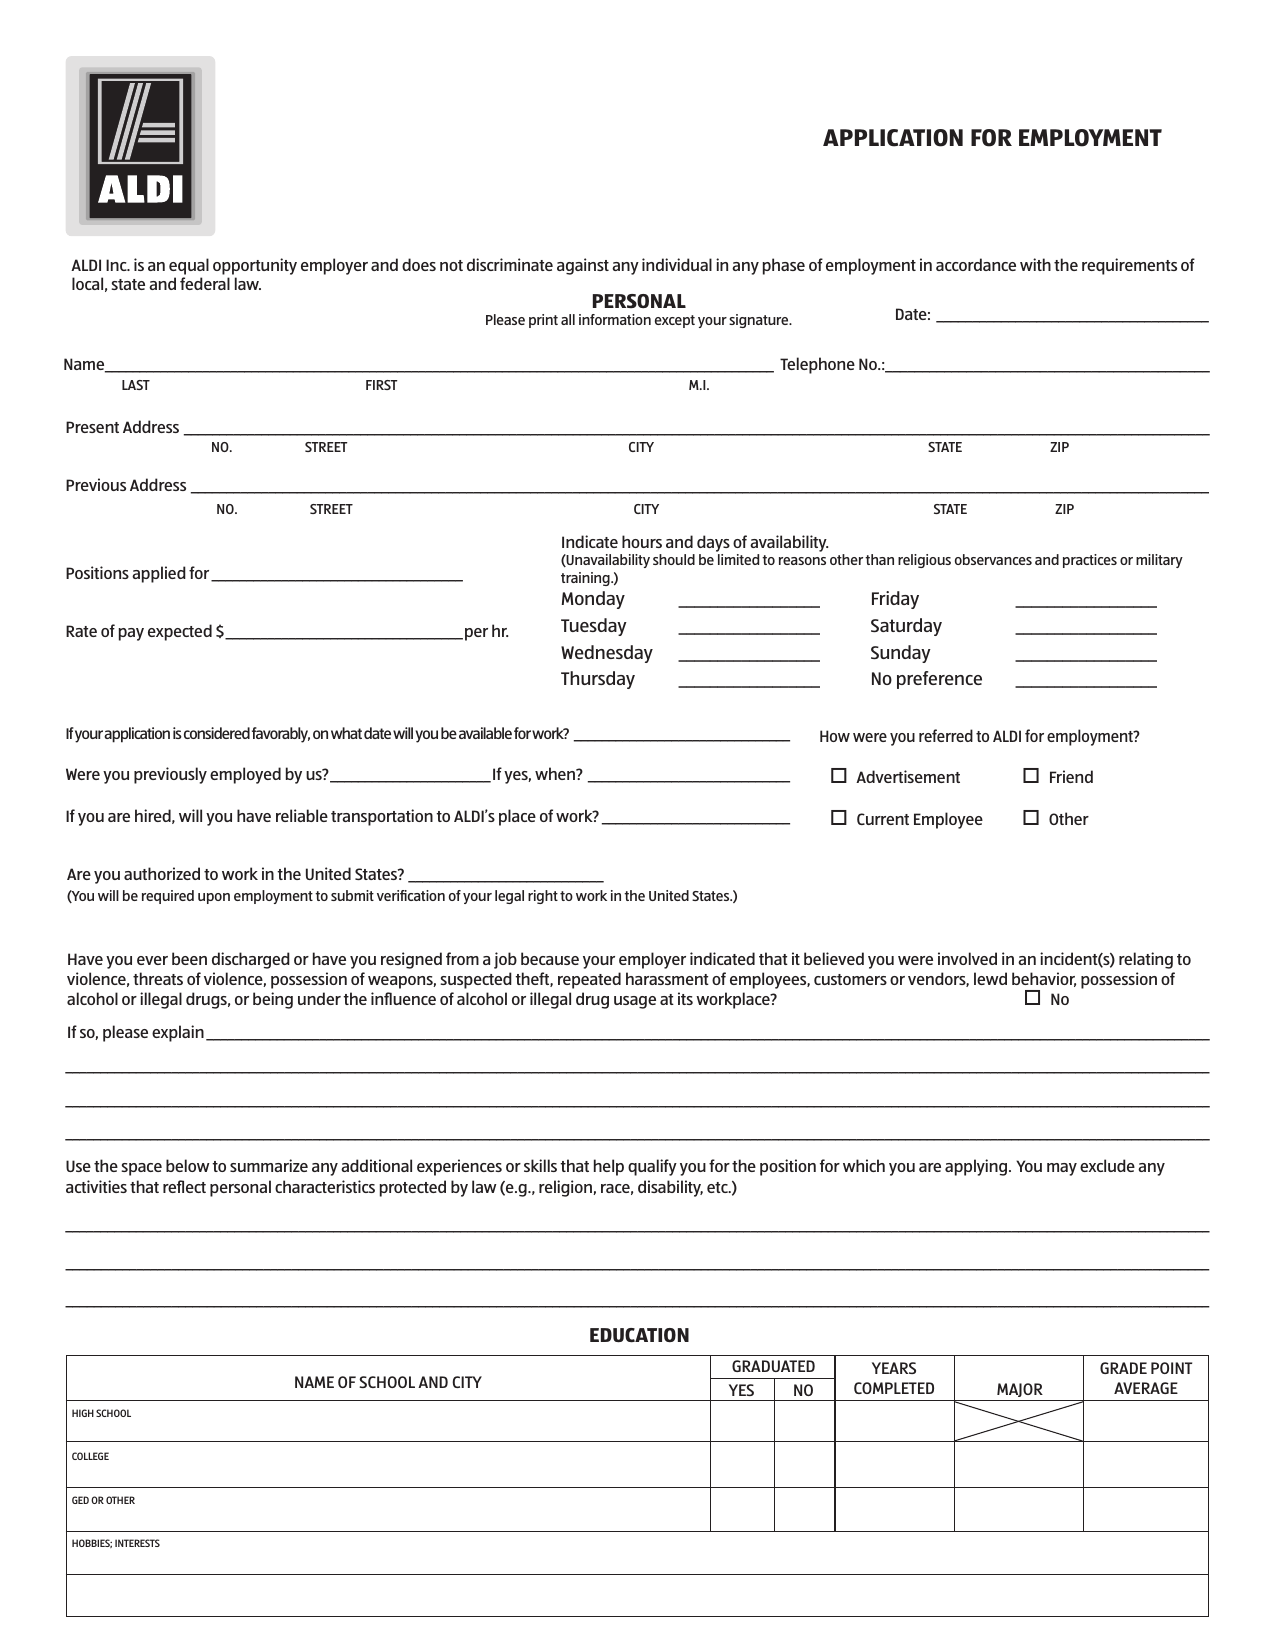 aldi application form mabel mobeetel co